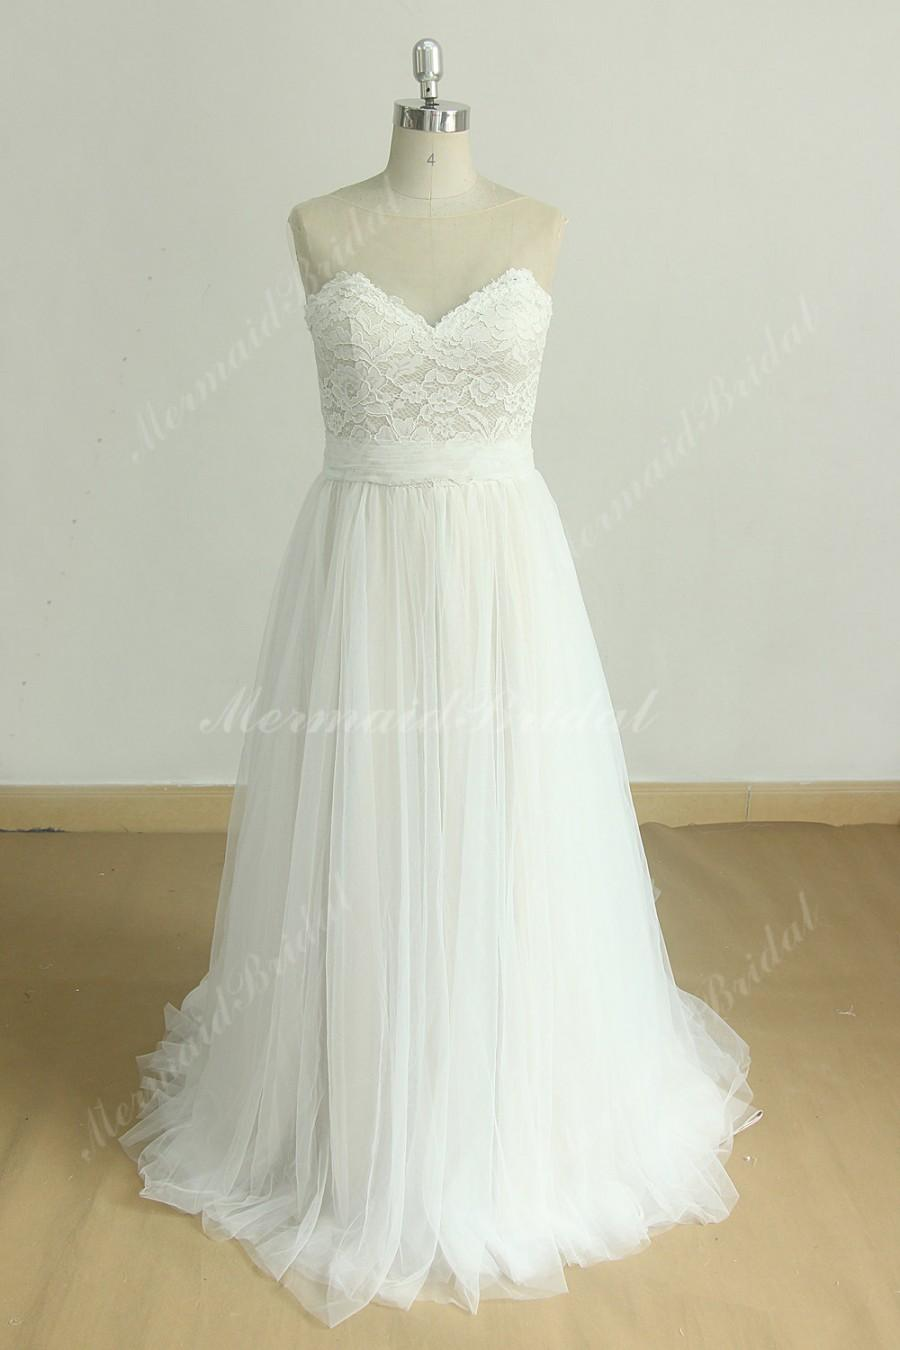 زفاف - Flowy Aline Tulle lace wedding dress with illusion sweetheart neckine and champagne lining